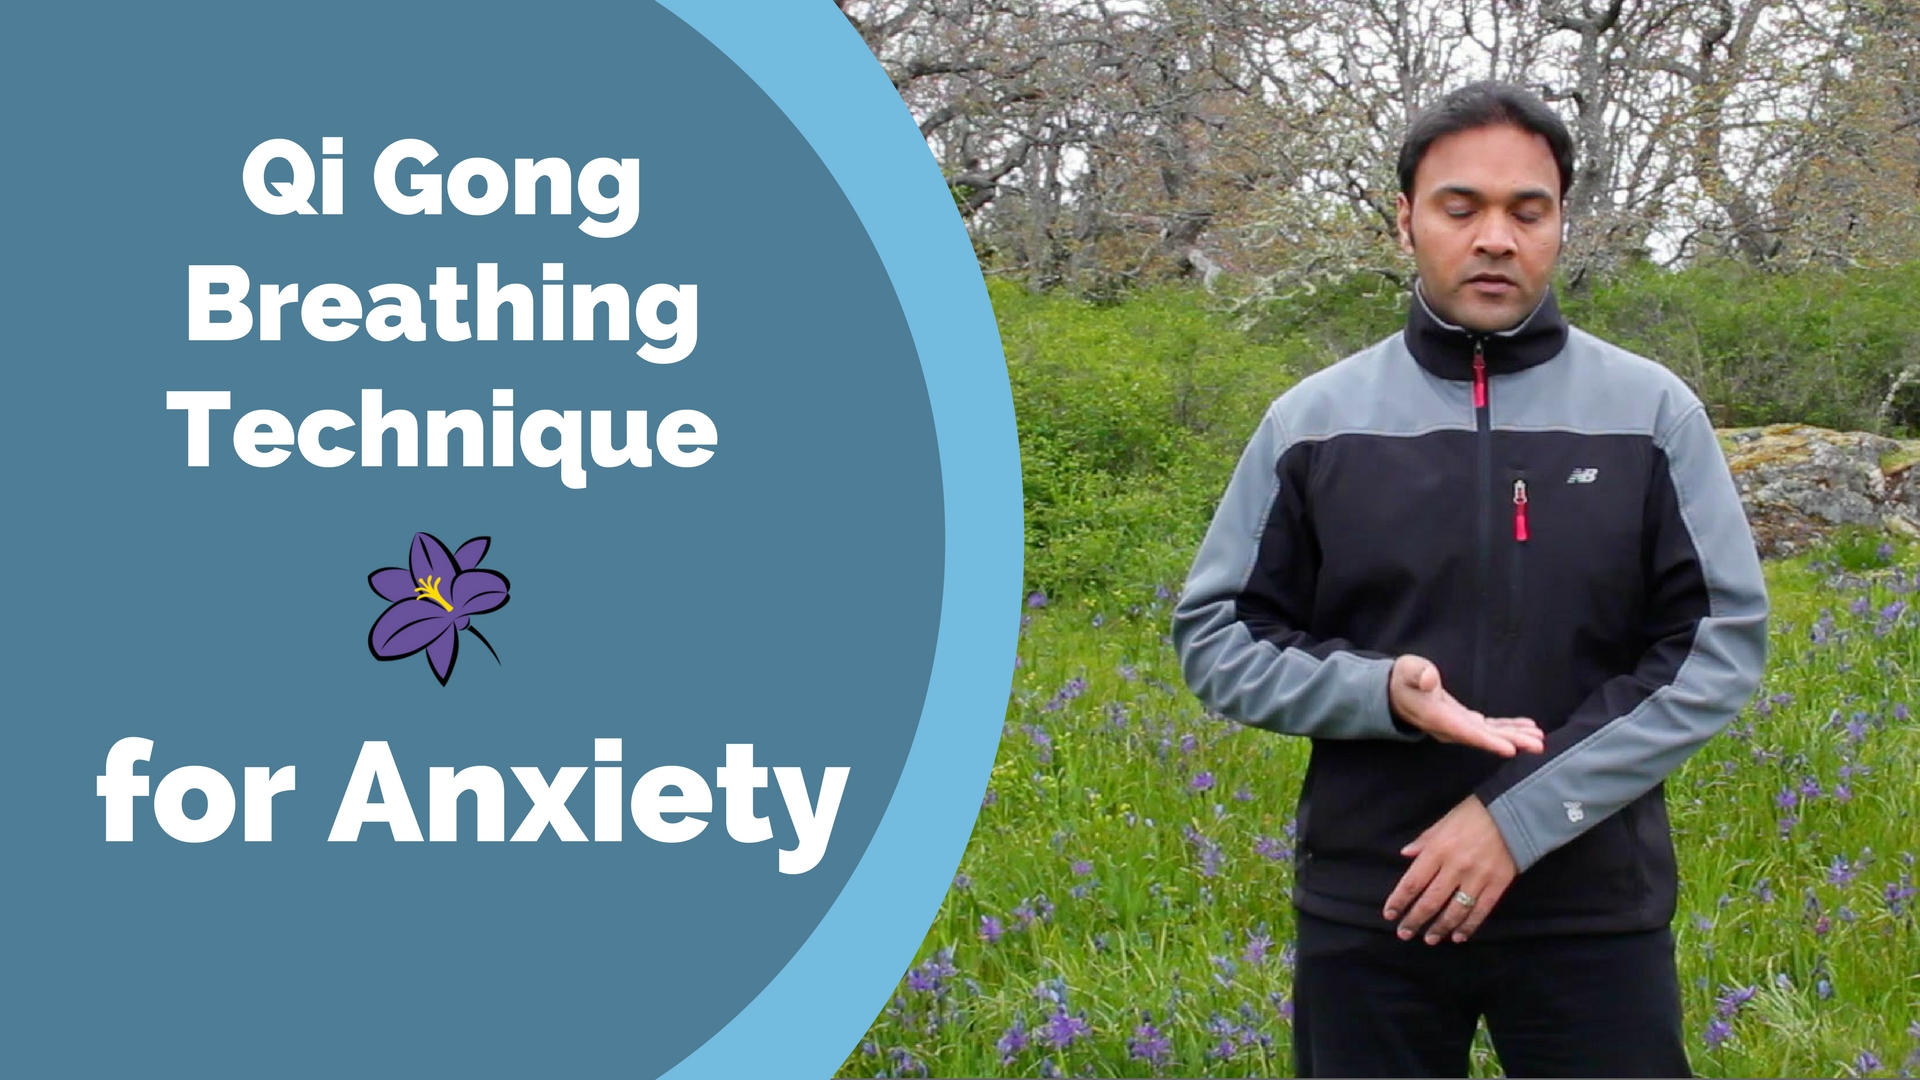 Qi Gong Breathing Technique for Anxiety